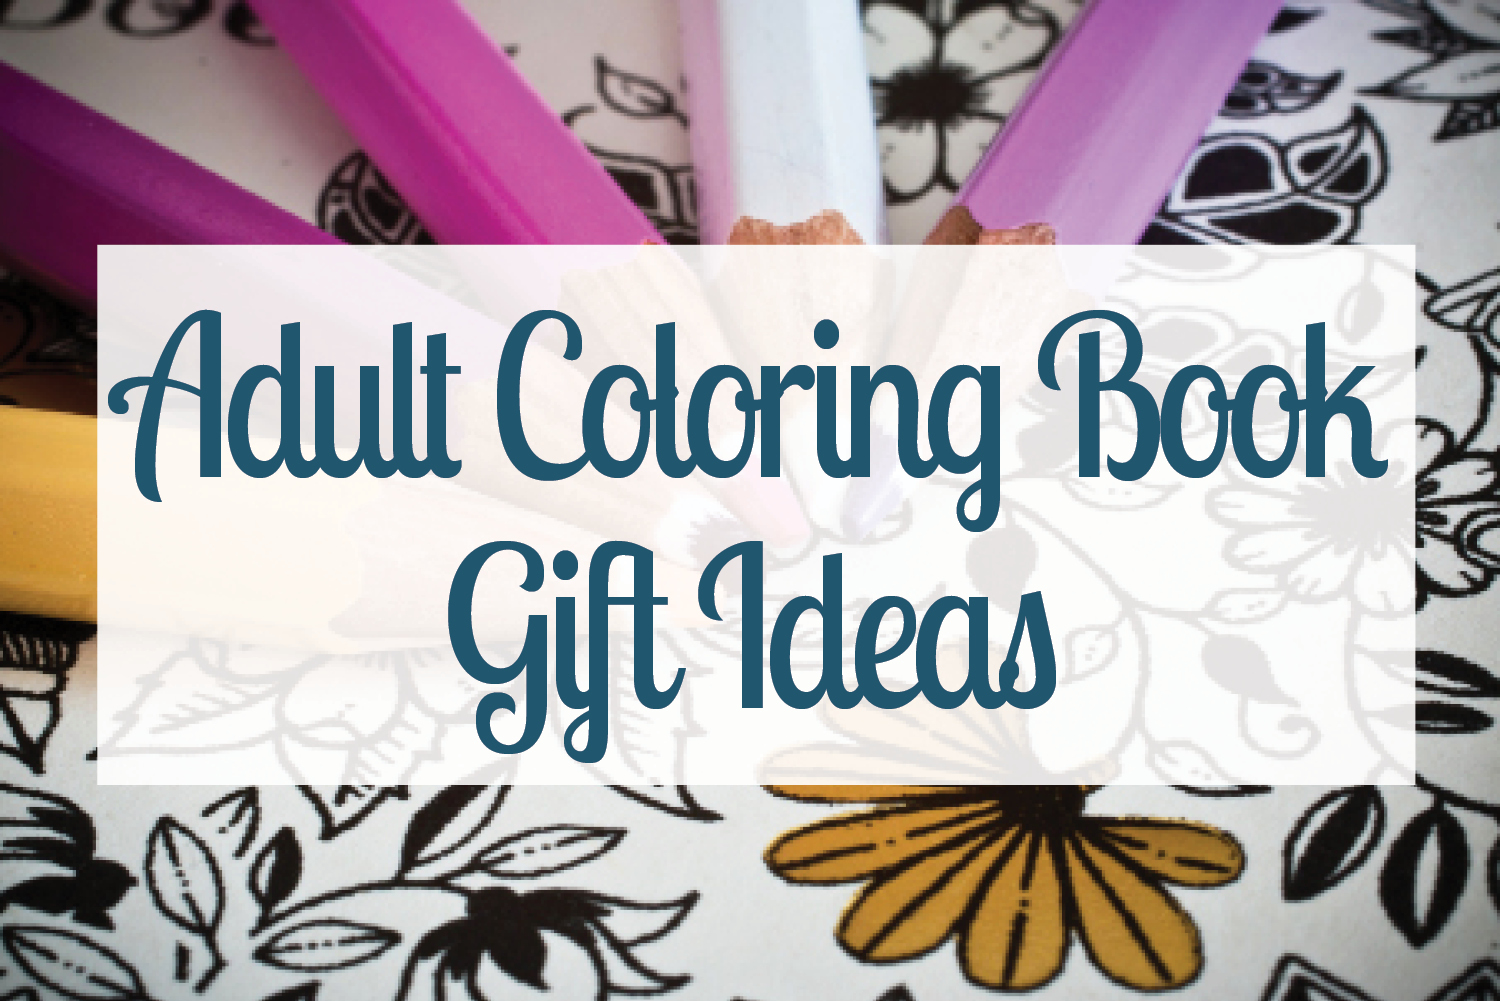 A List Of Adult Coloring Book Gift Ideas If You Know Someone Obsessed